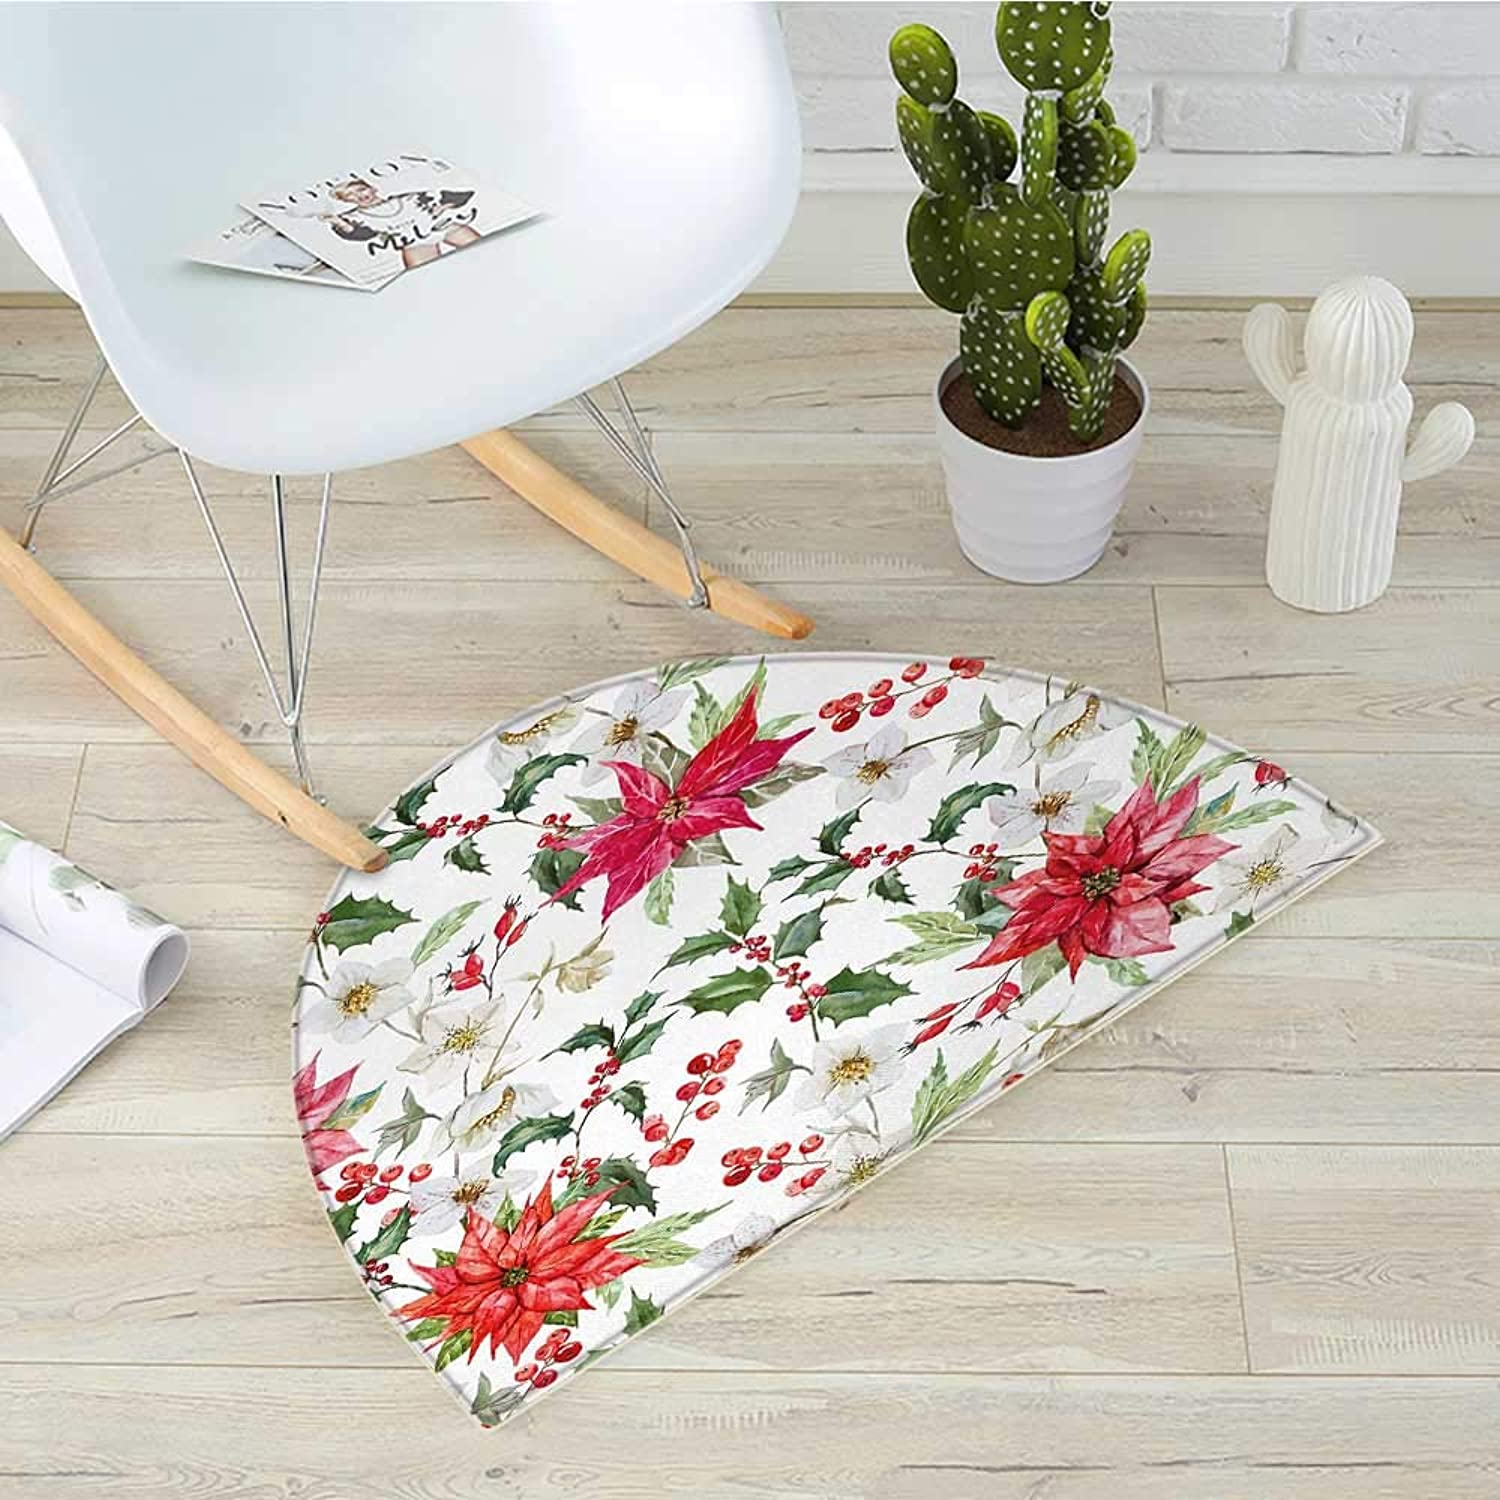 Floral Semicircular CushionChristmas Flowers Pattern in Watercolors Buds Branches Natural Spring Artwork Entry Door Mat H 43.3  xD 64.9  Pink Green White